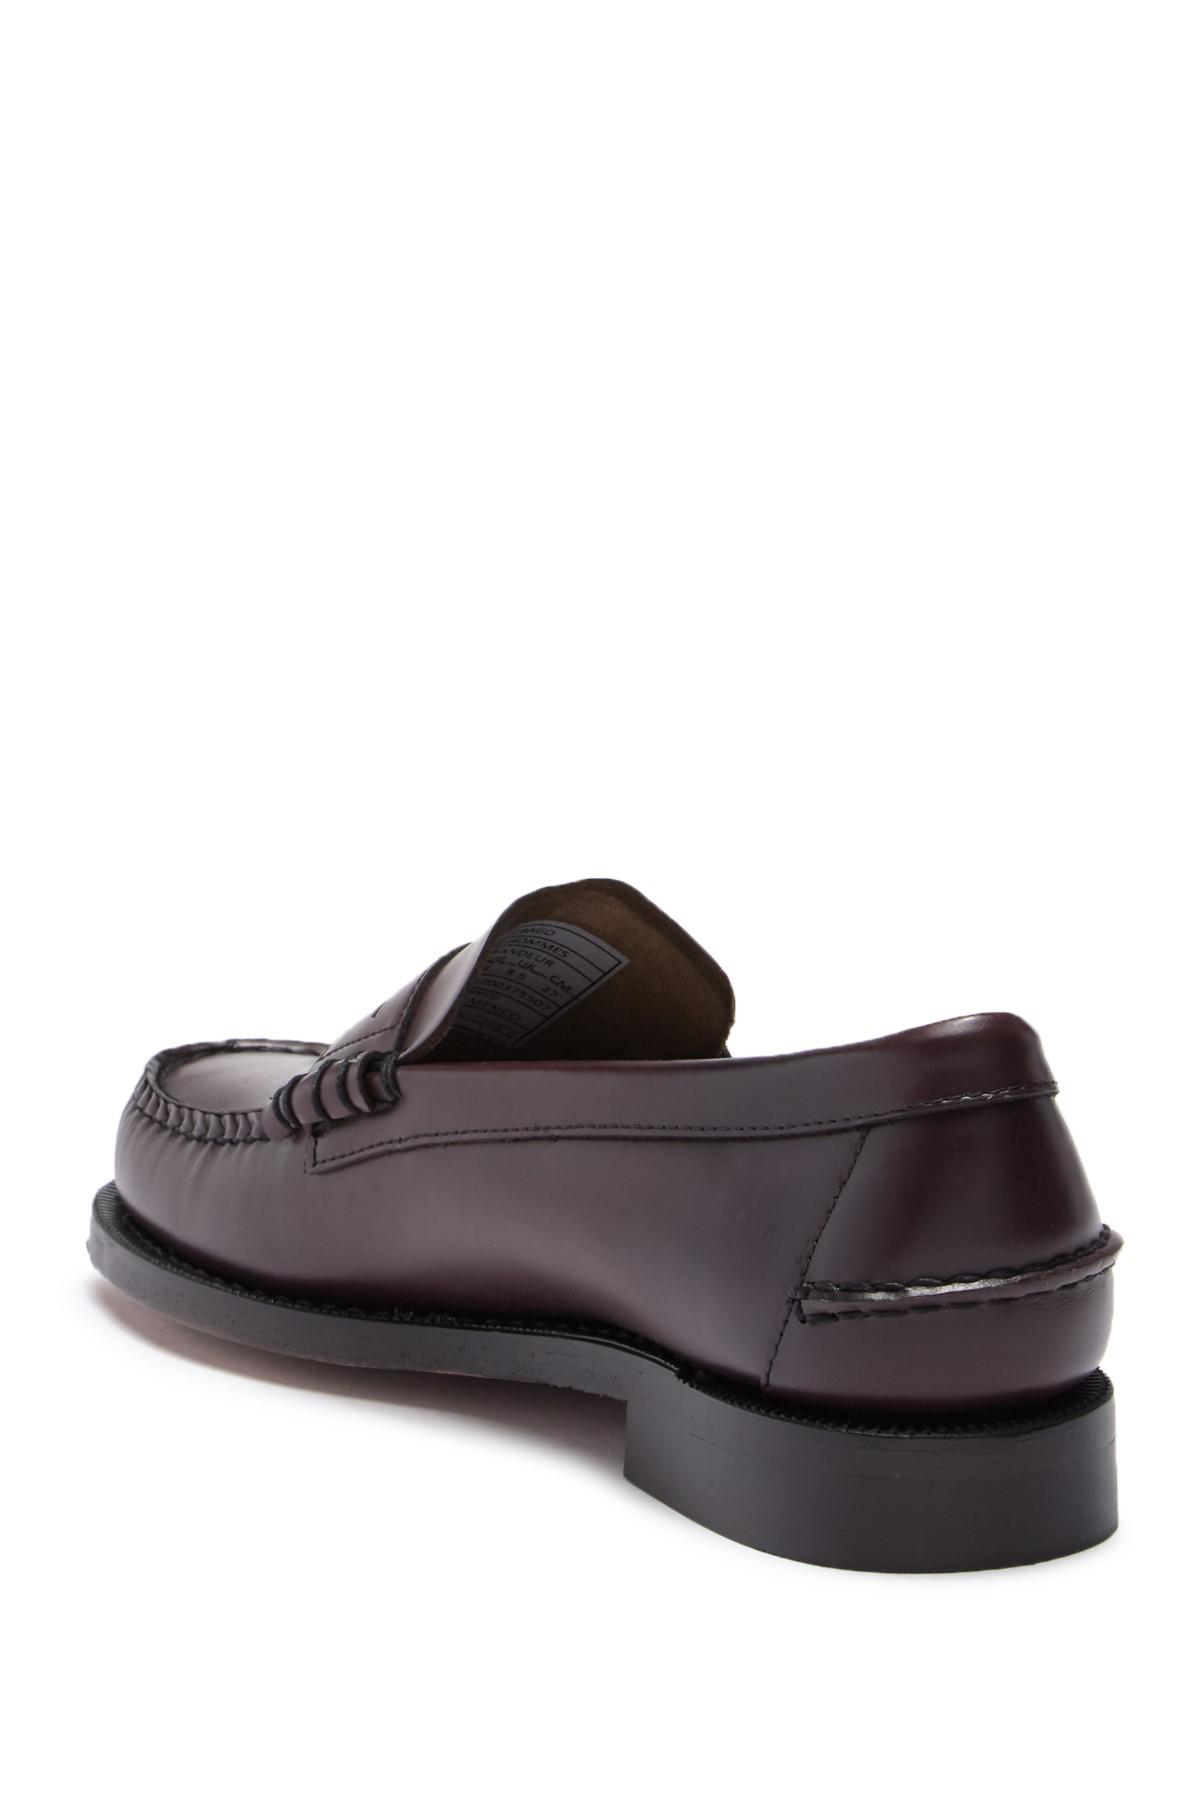 Lyst - Sebago Classic Penny Loafer in Brown for Men